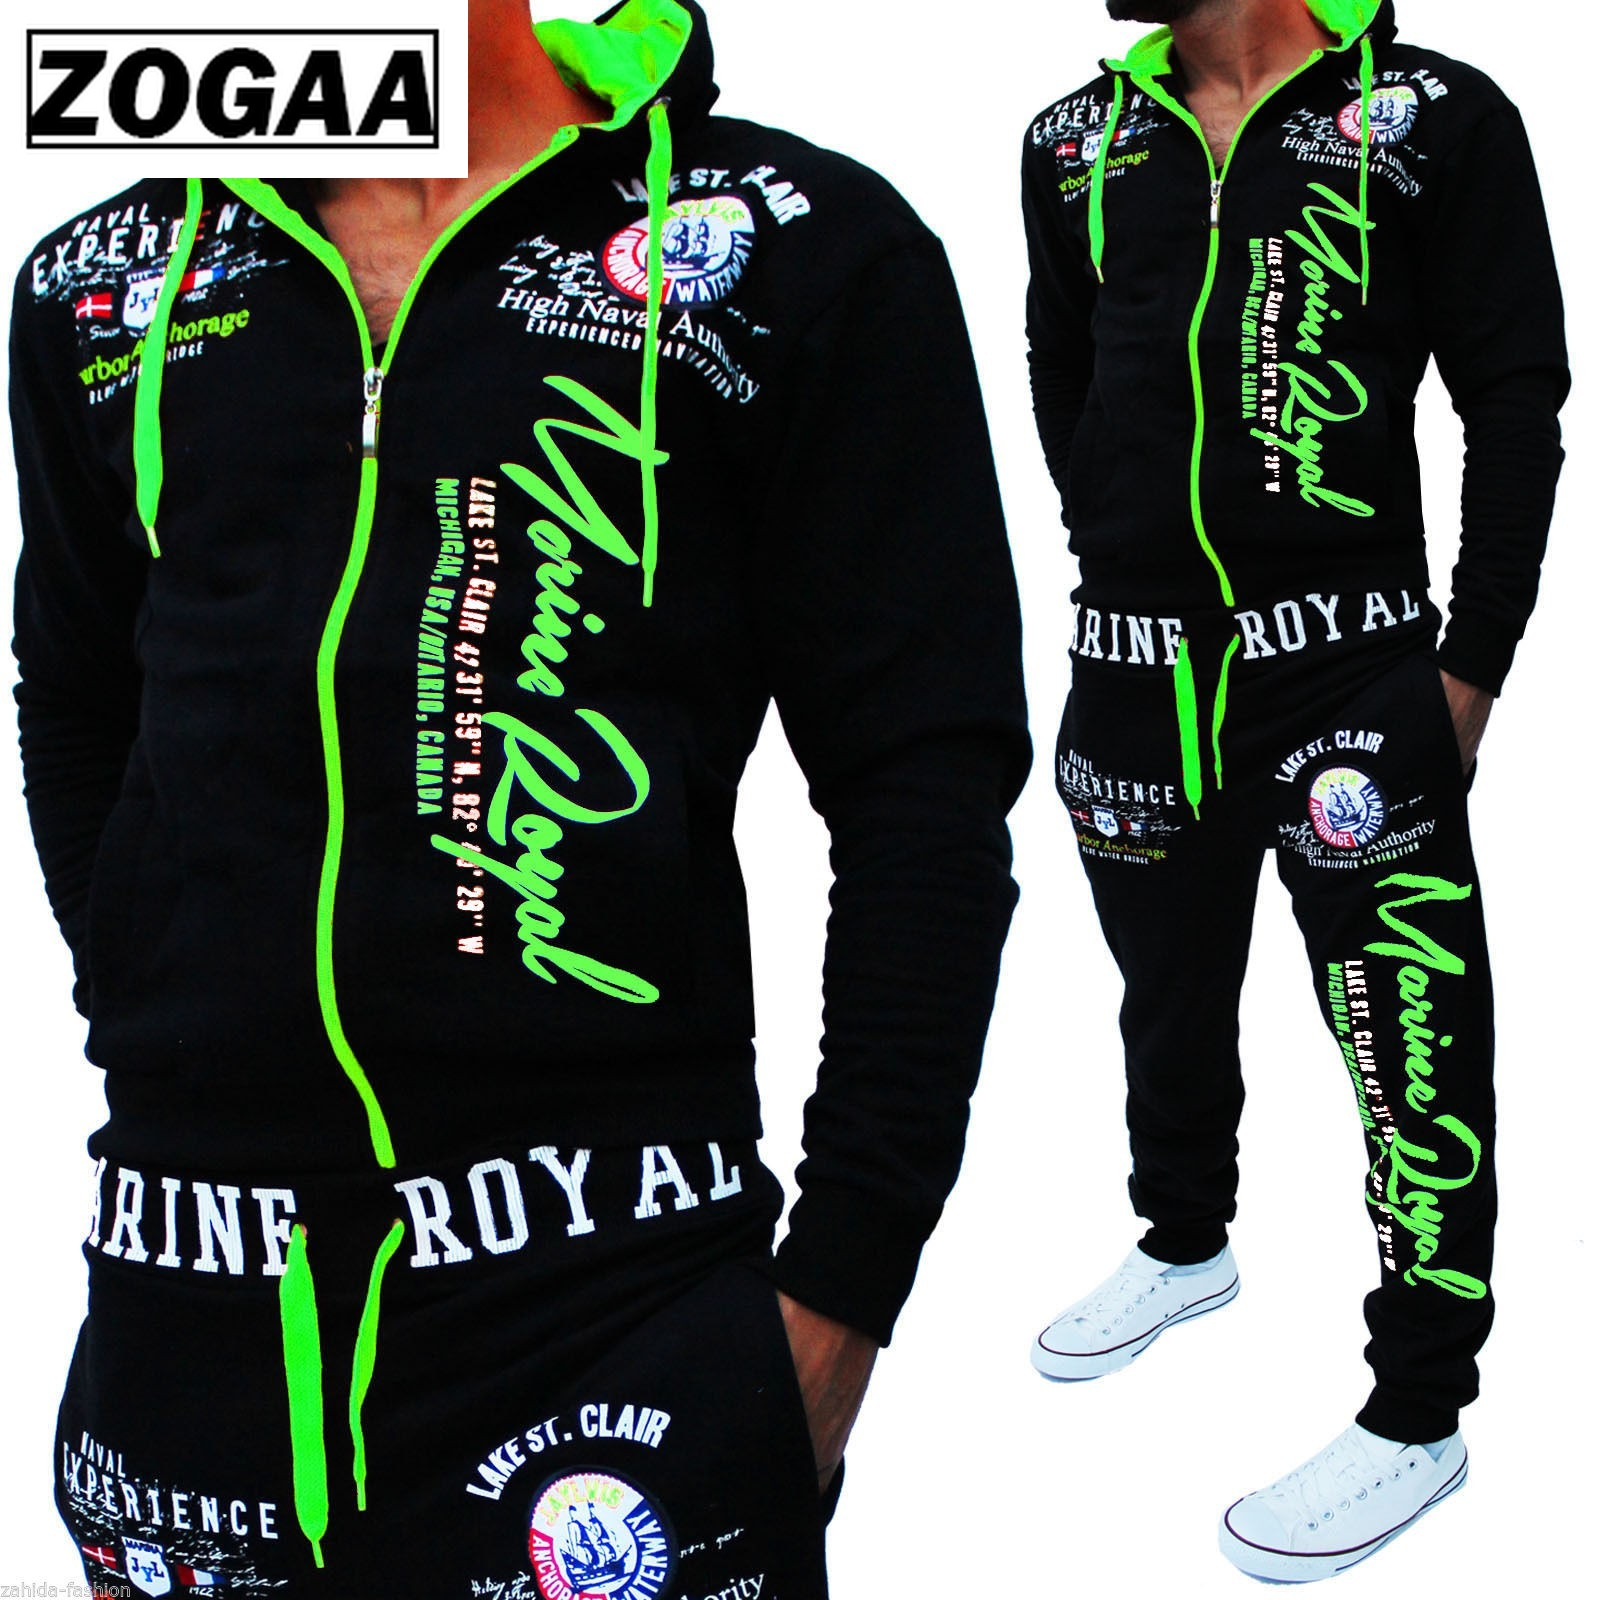 ZOGAA New 8color Men's Fashion Two-piece Men's Casual Sportswear Hooded Sweatshirt And Pants Suit Letter Printed Sportswear 3xl